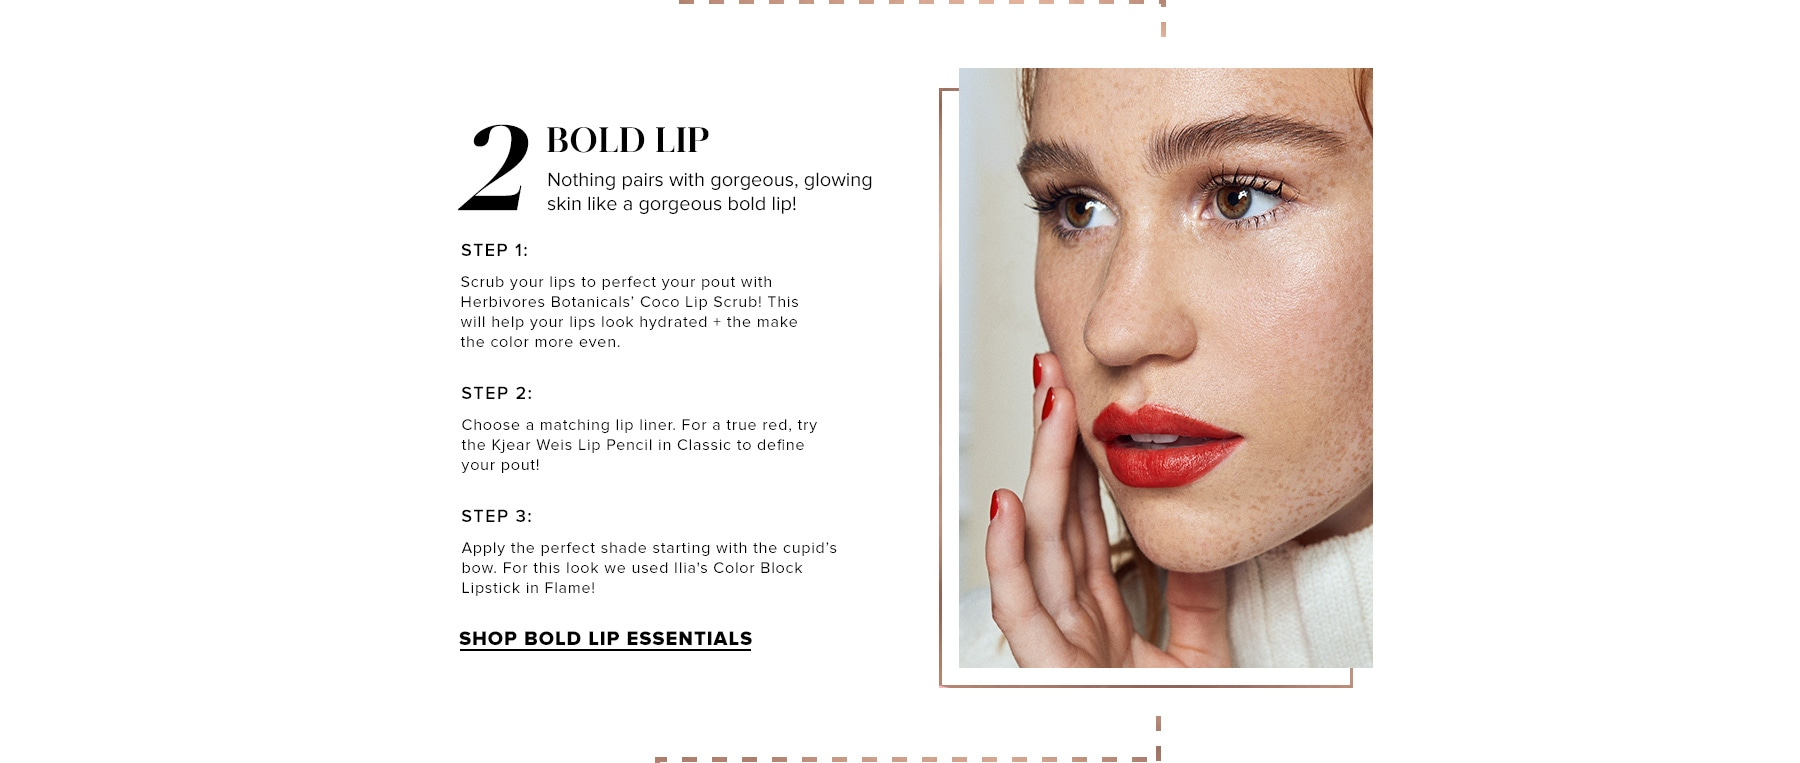 2. Bold Lip - Nothing pairs with gorgeous, glowing skin like a gorgeous bold lip!